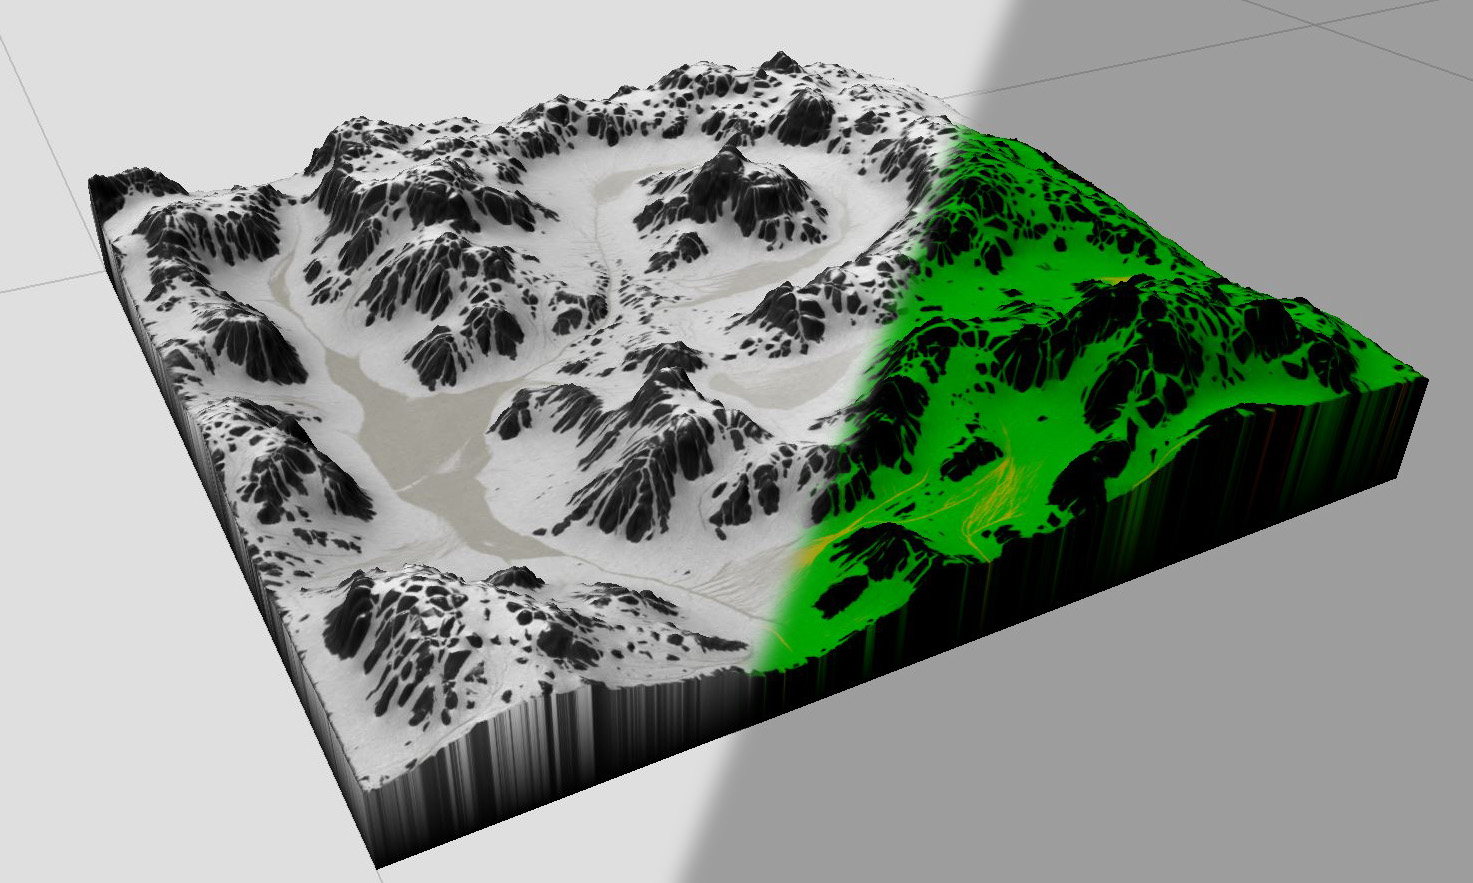 Left is a kind of beauty pass inside Worldmachine - on the right side we do see a splatmap for shading inside UE4